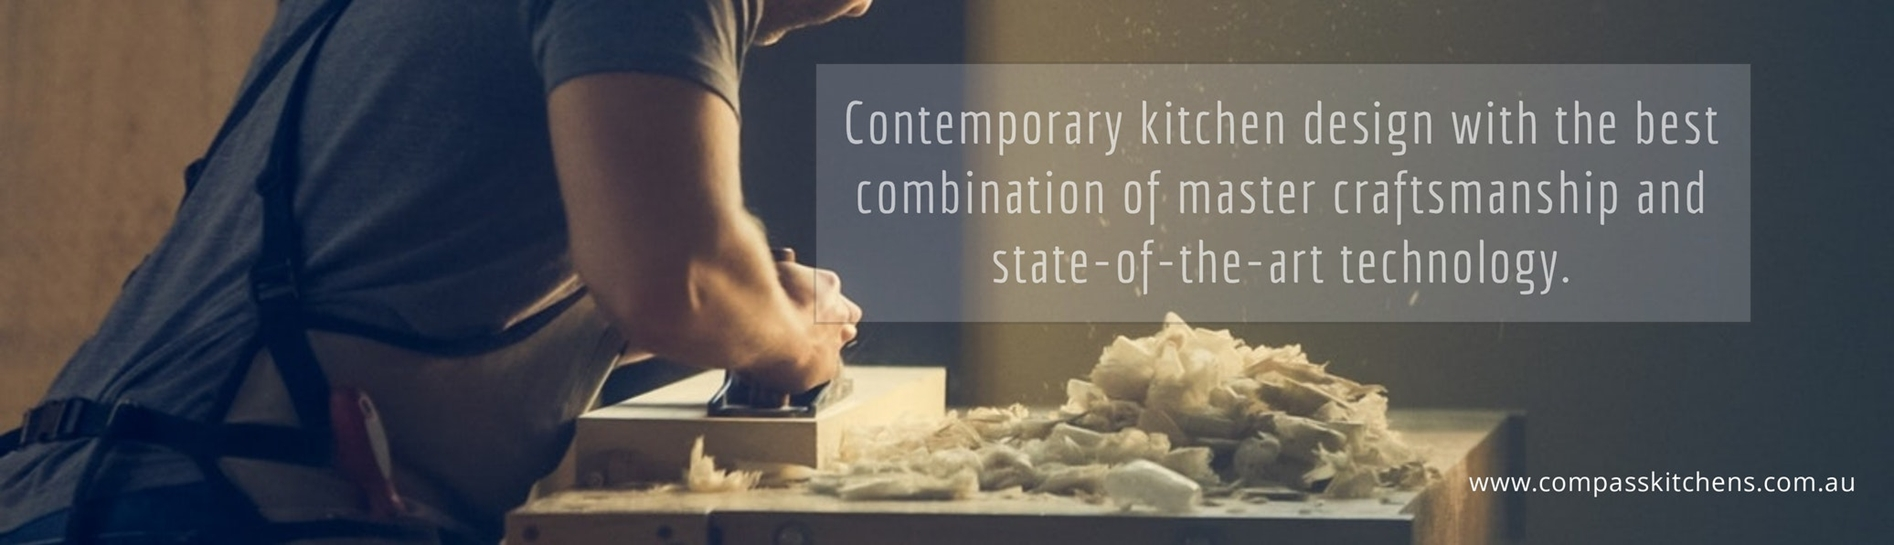 Compass Kitchens